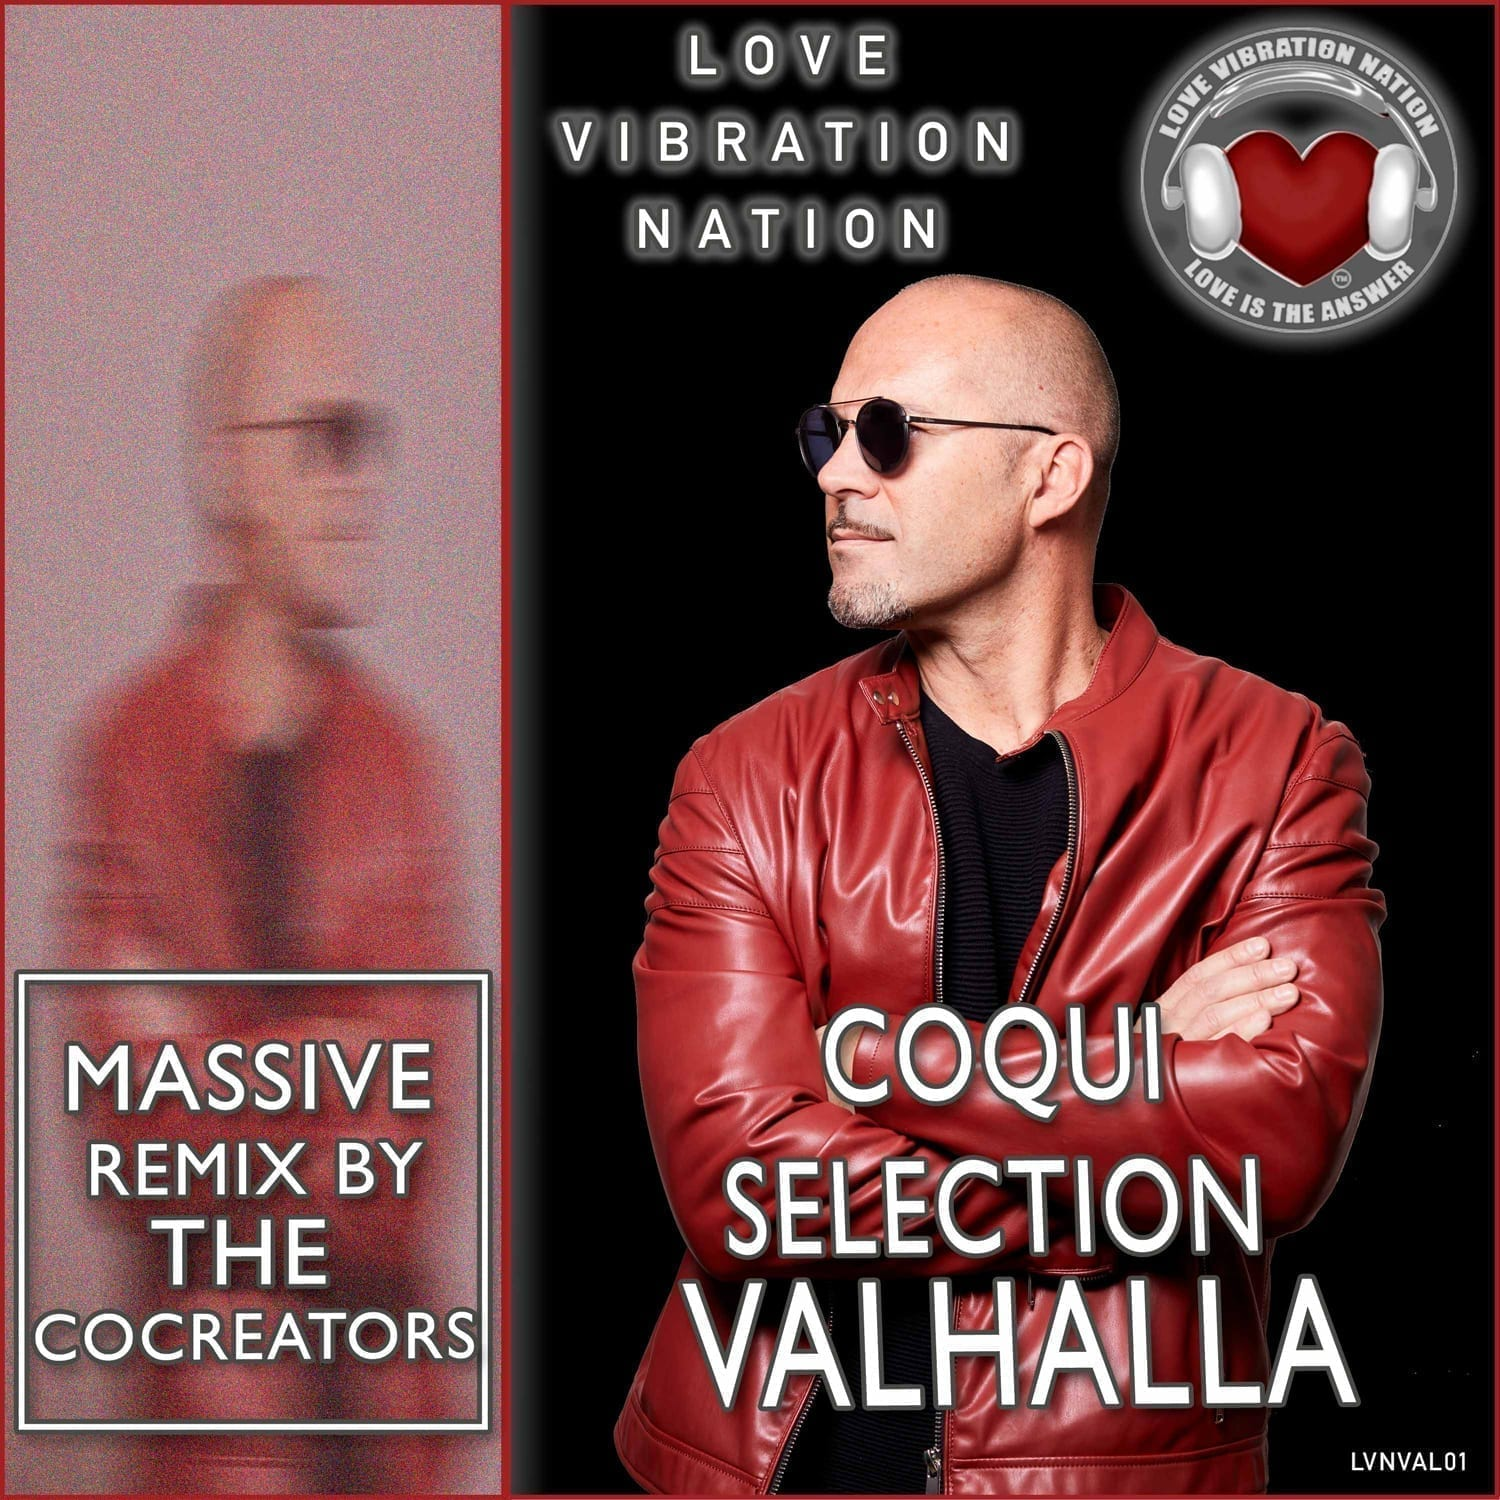 Spanish Legend Coqui Selection is back on Love Vibration Nation together with The CoCreators